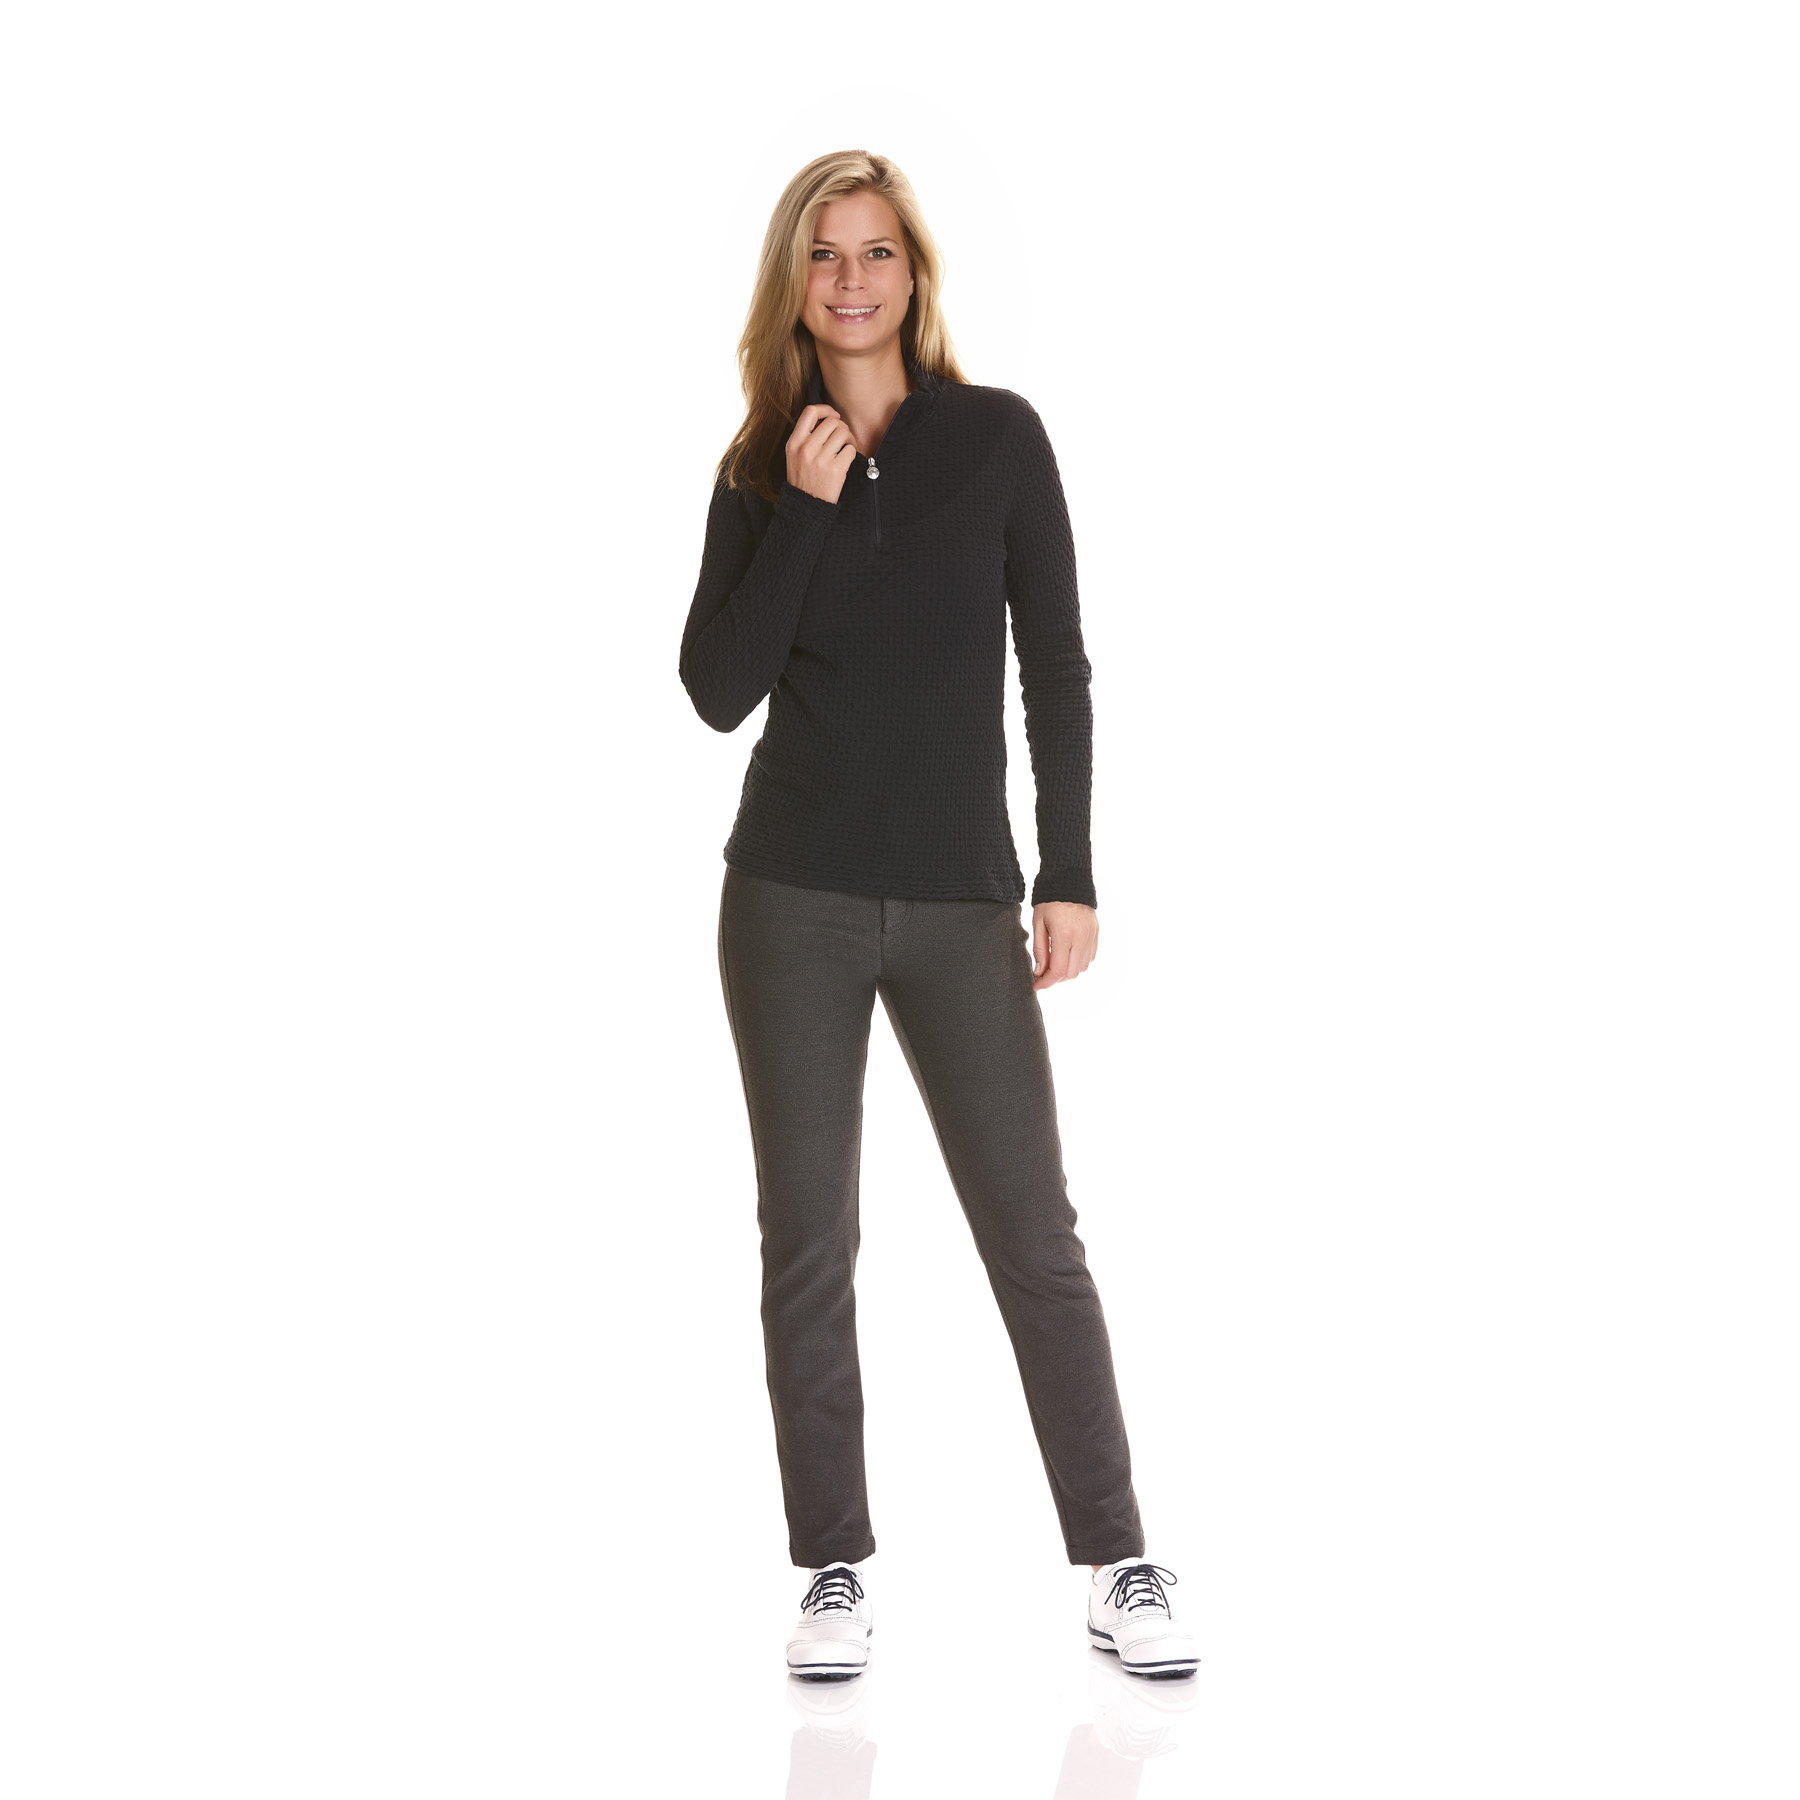 Gemusterter Damen Baumwoll Funktions-Stretchtroyer in Slim Fit